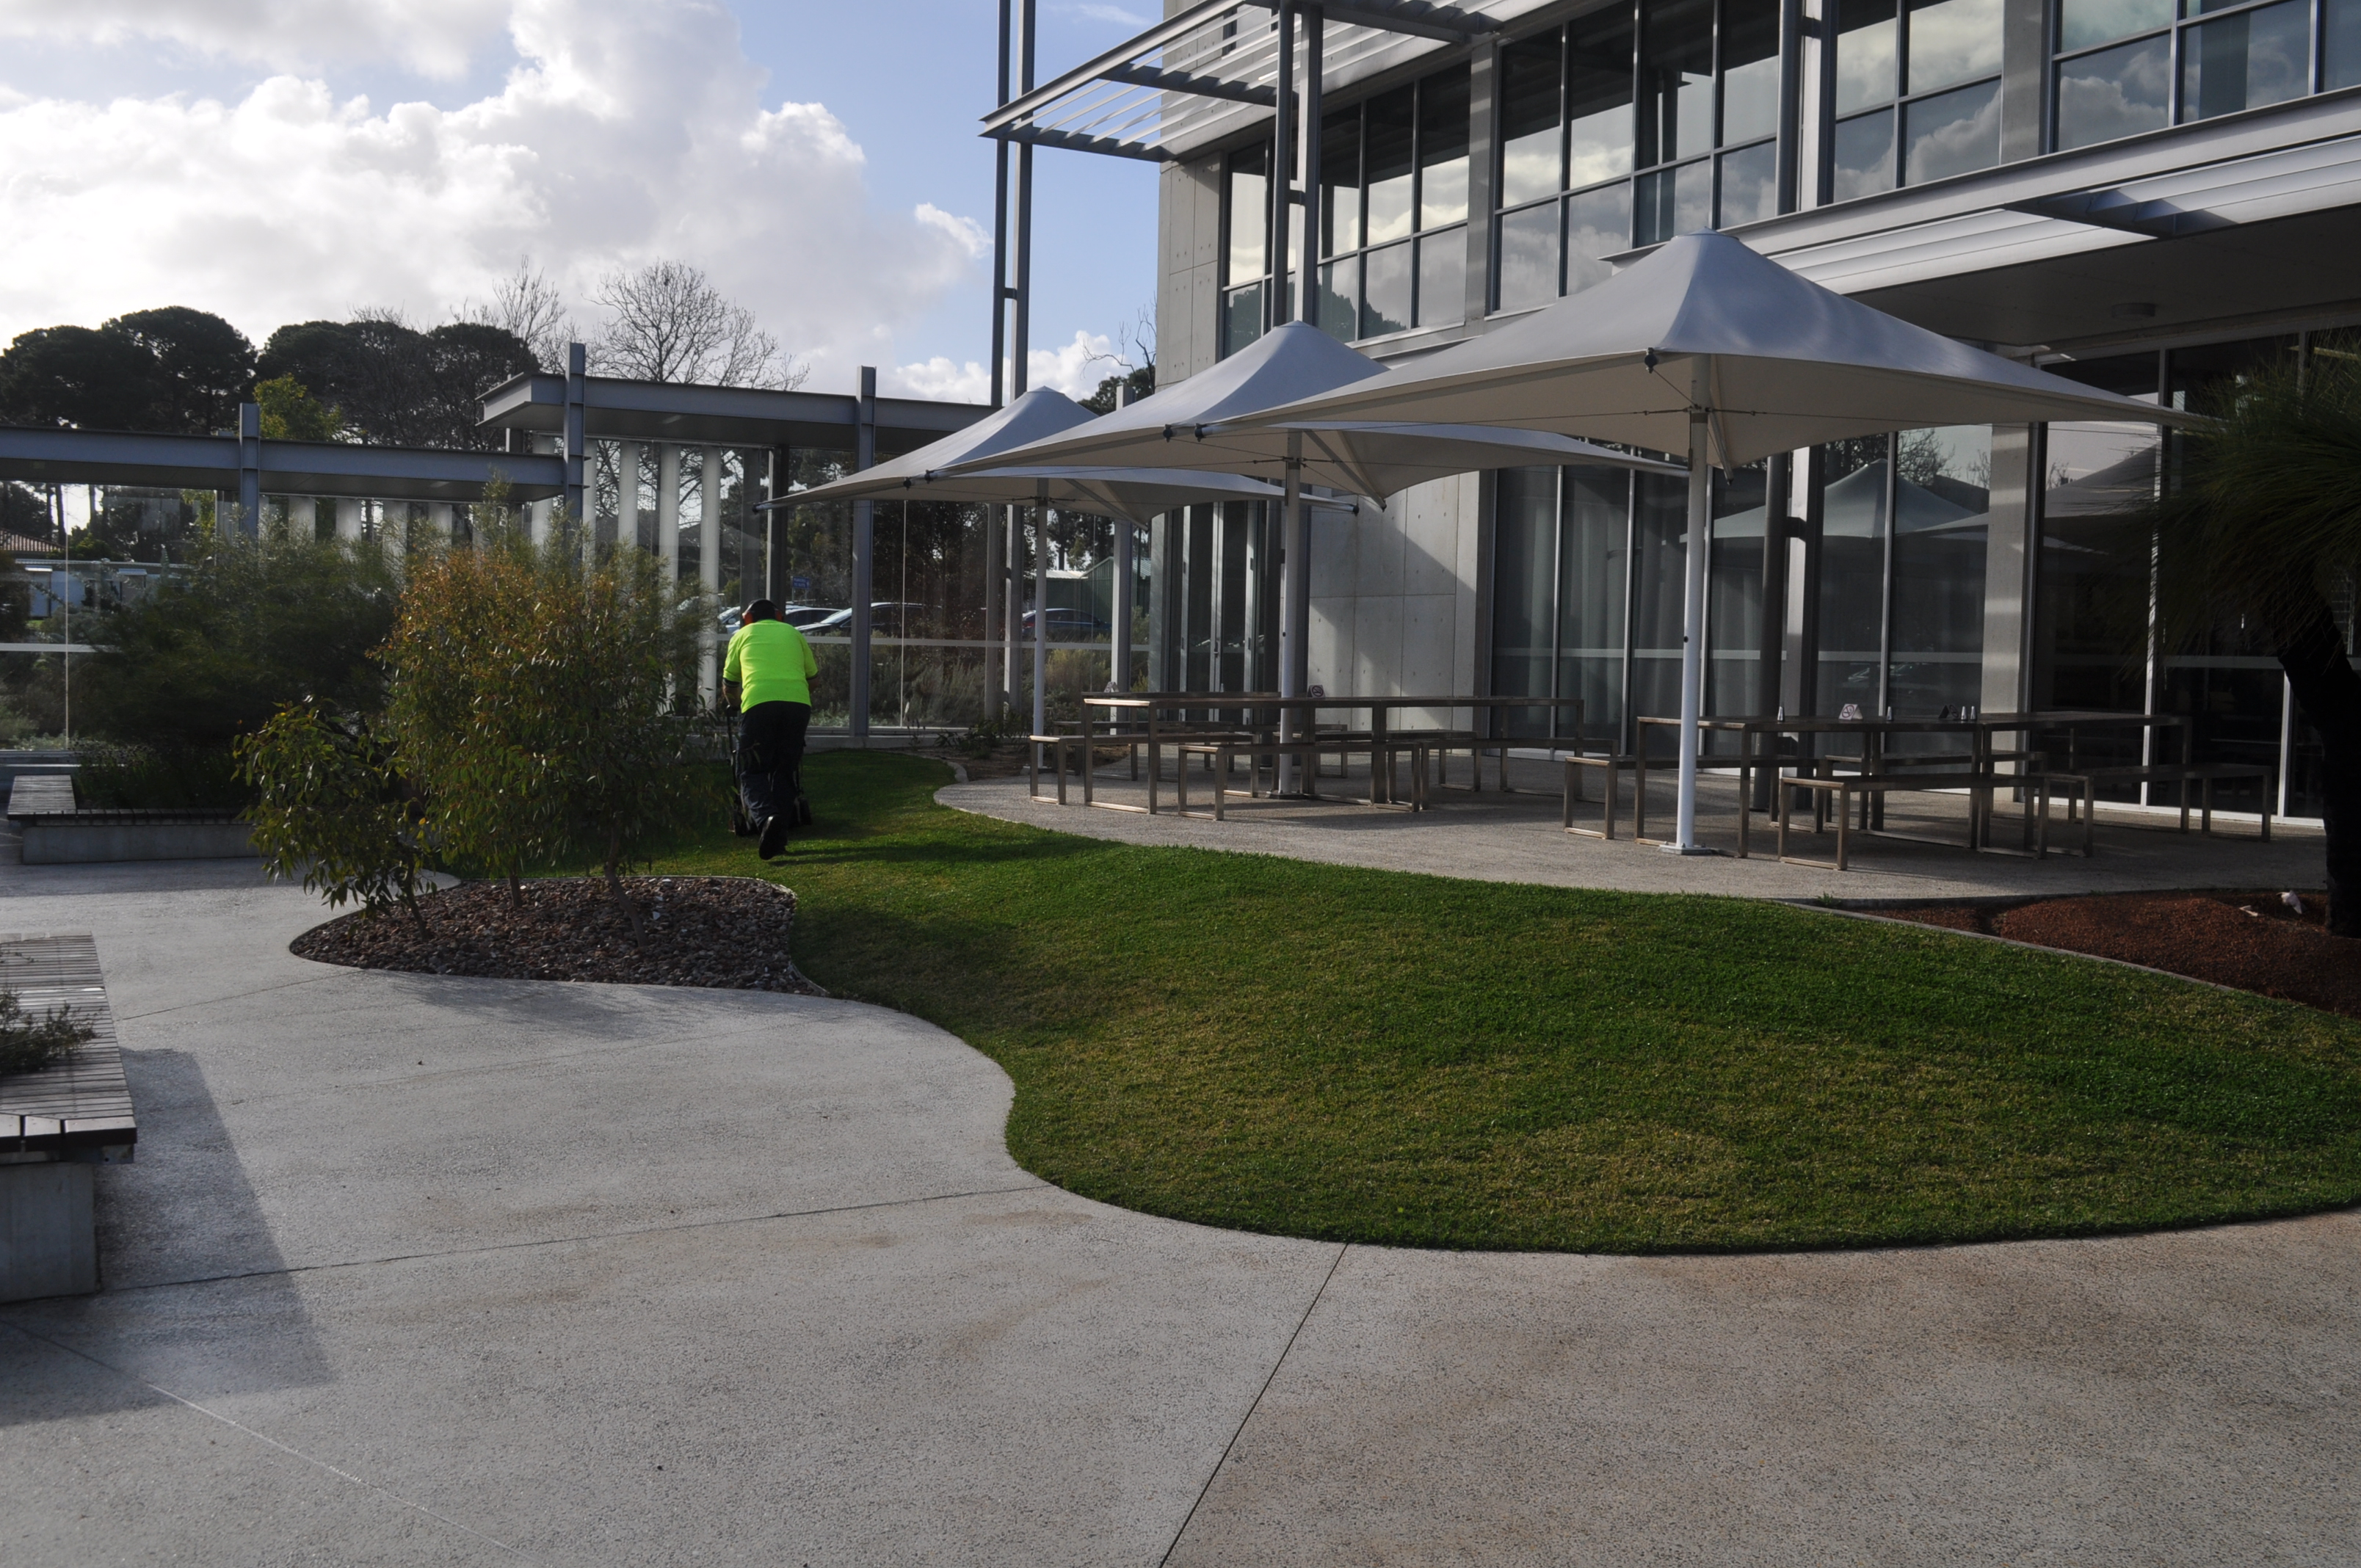 Reliable, cost efficient landscaping services for your business